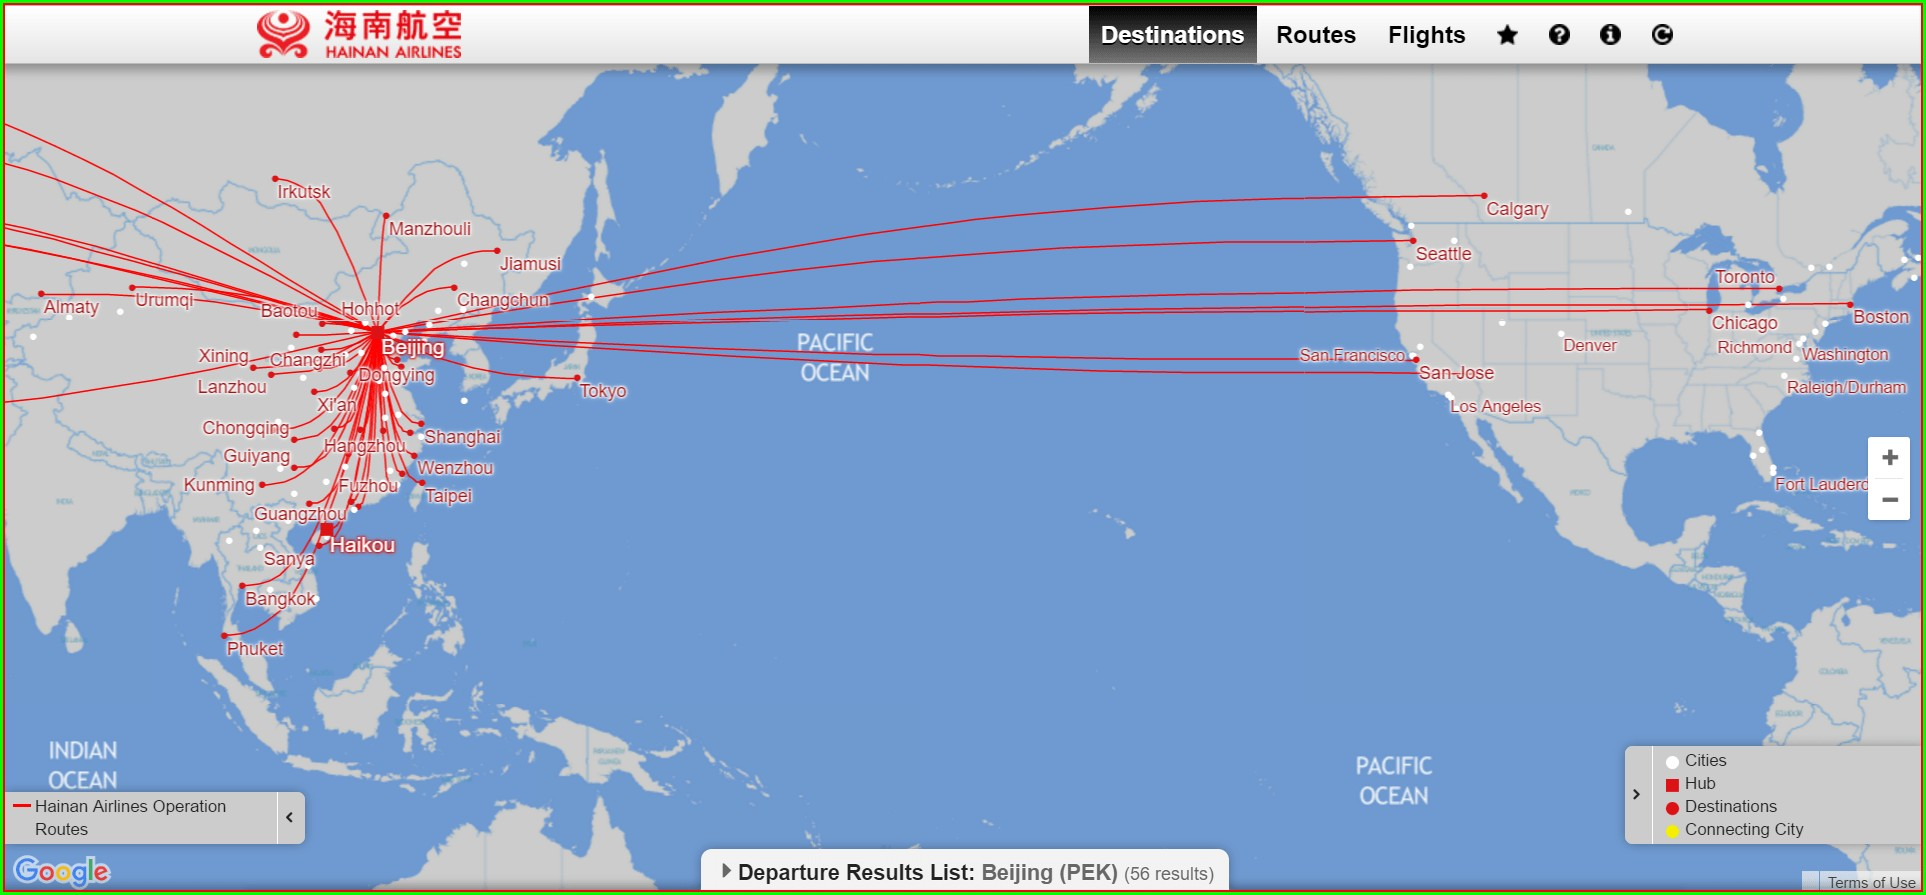 Hainan Airlines Route Map 2019